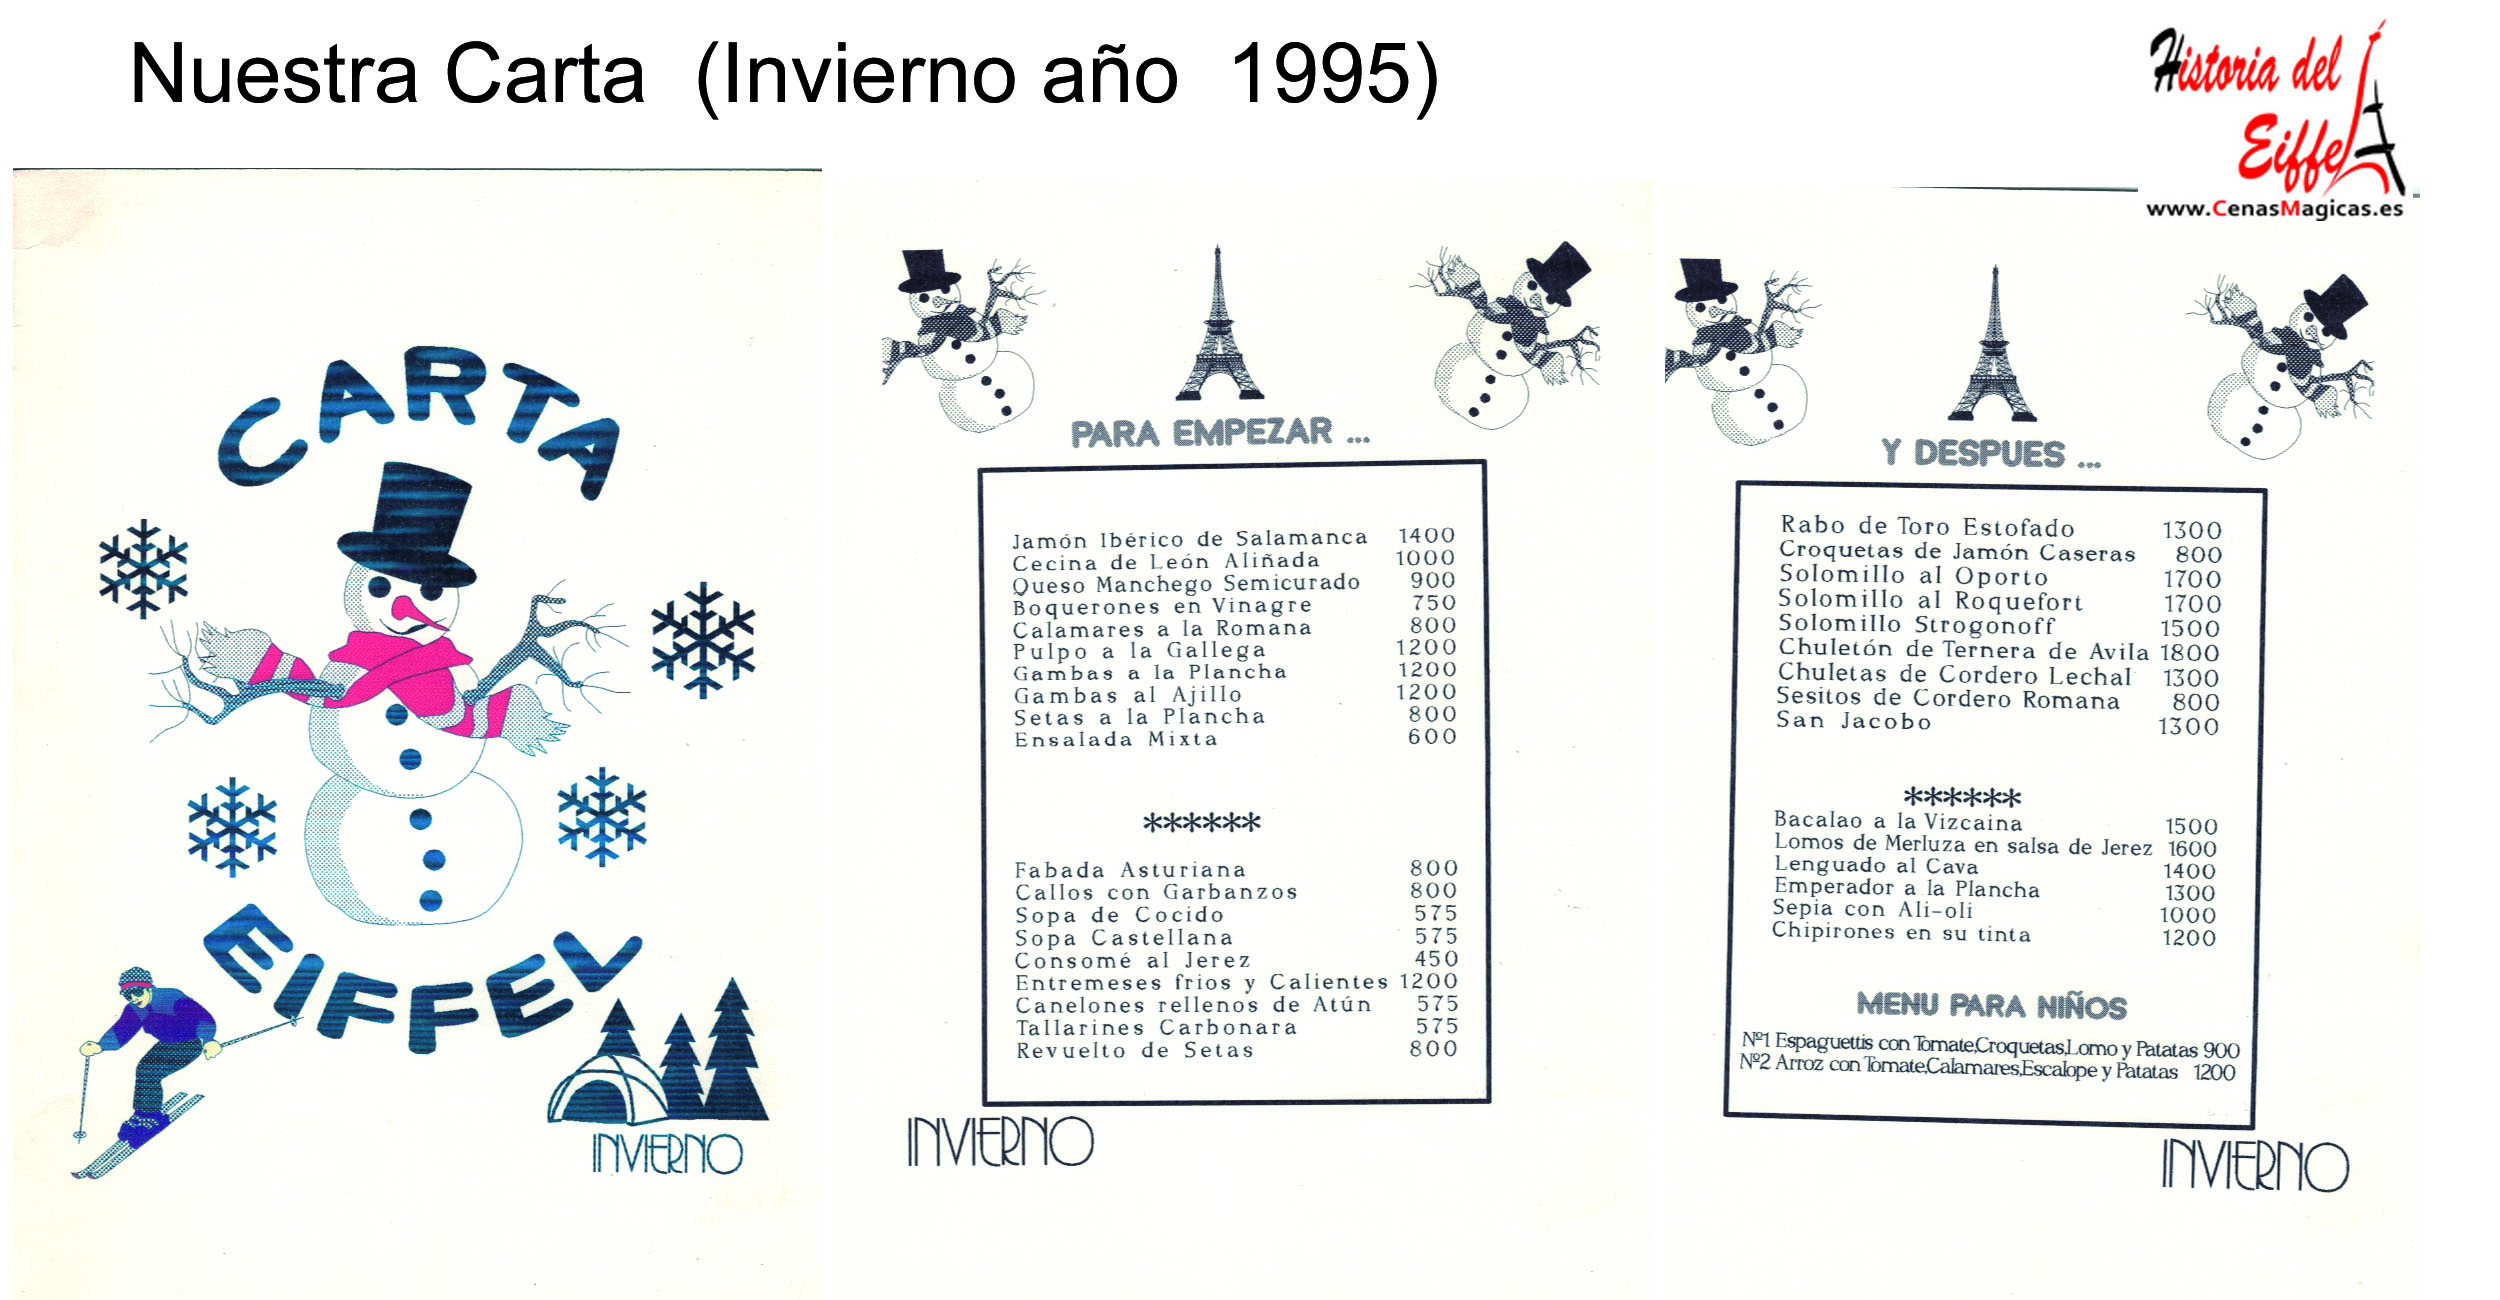 CartaInvierno1995